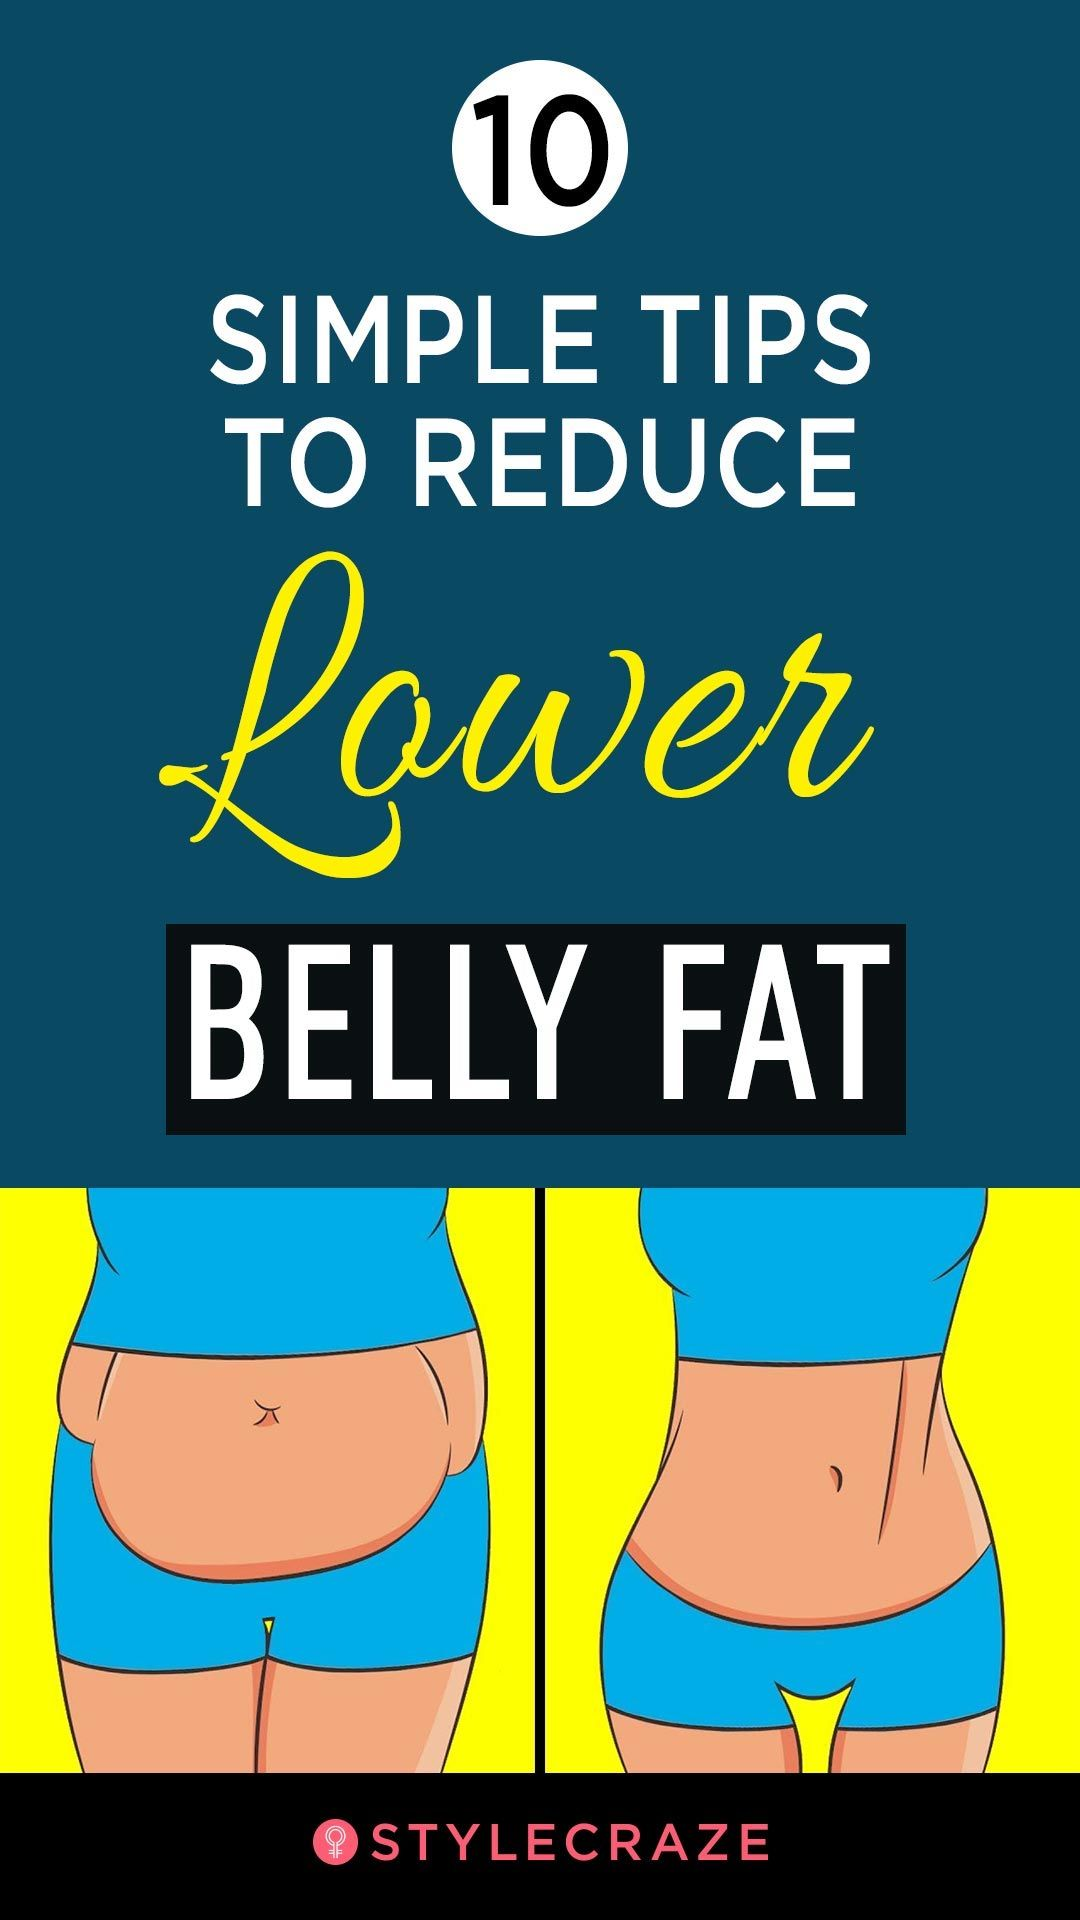 10 Simple Tips To Reduce Lower Belly Fat recommendations